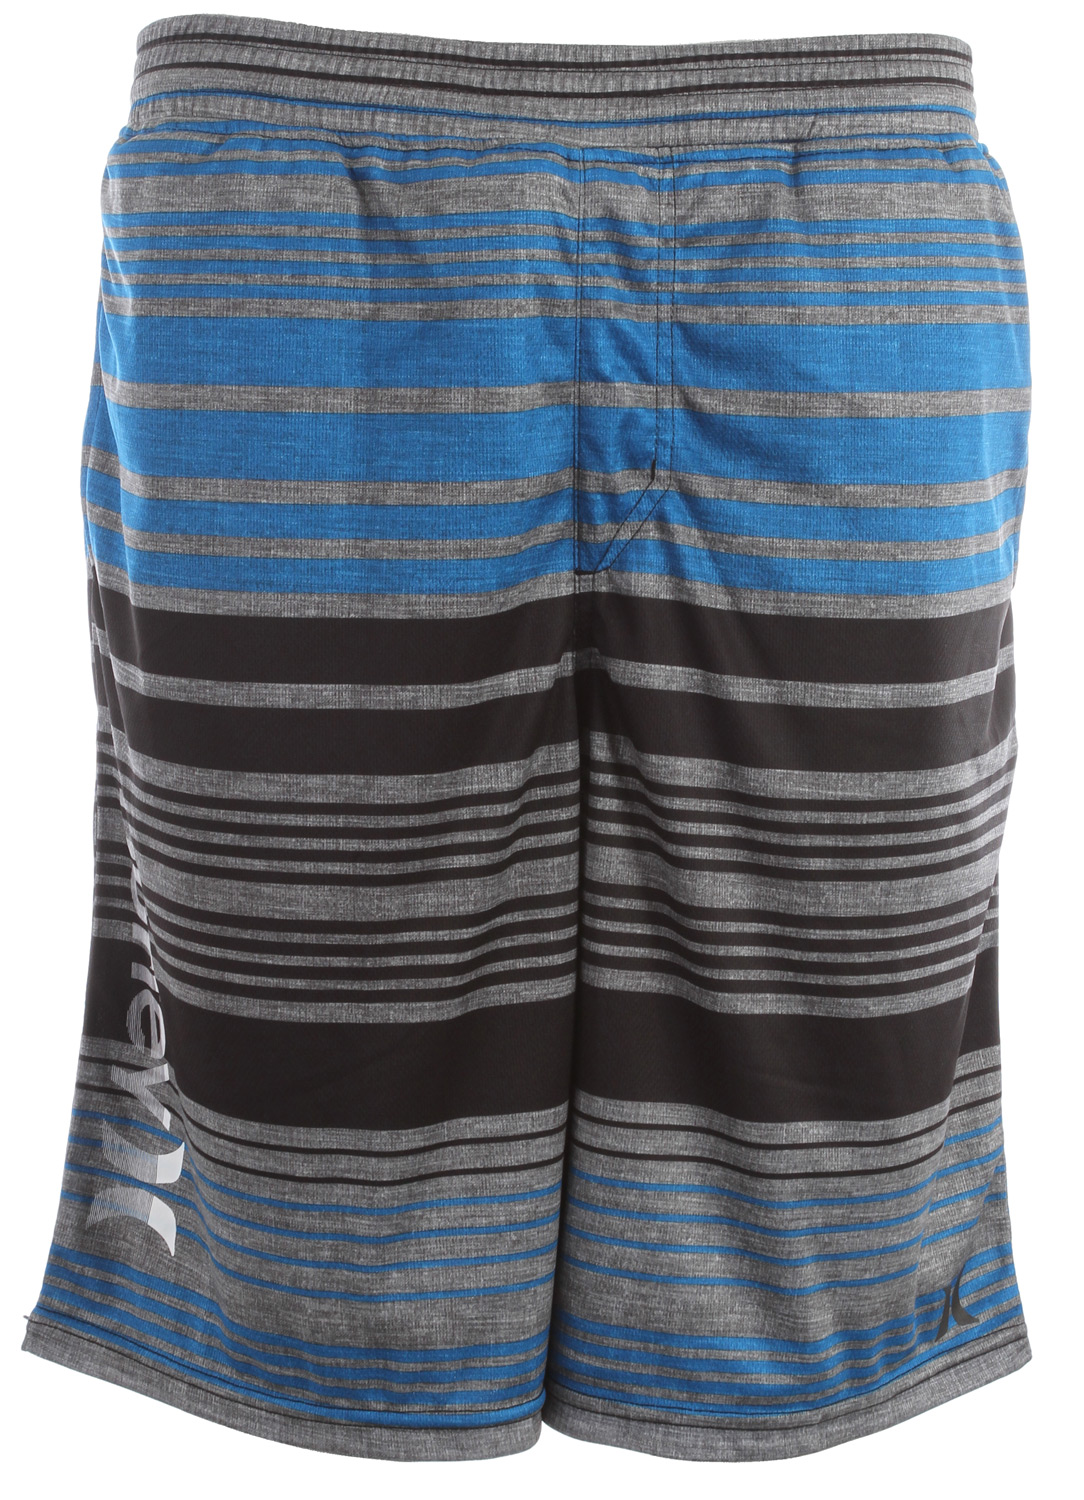 "Surf Key Features of the Hurley Ragland Mesh Shorts: 22"" athletic bottom 100% polyester mesh with nike dri-fit polyester lining Elastic waistband and lightweight mesh - $25.95"